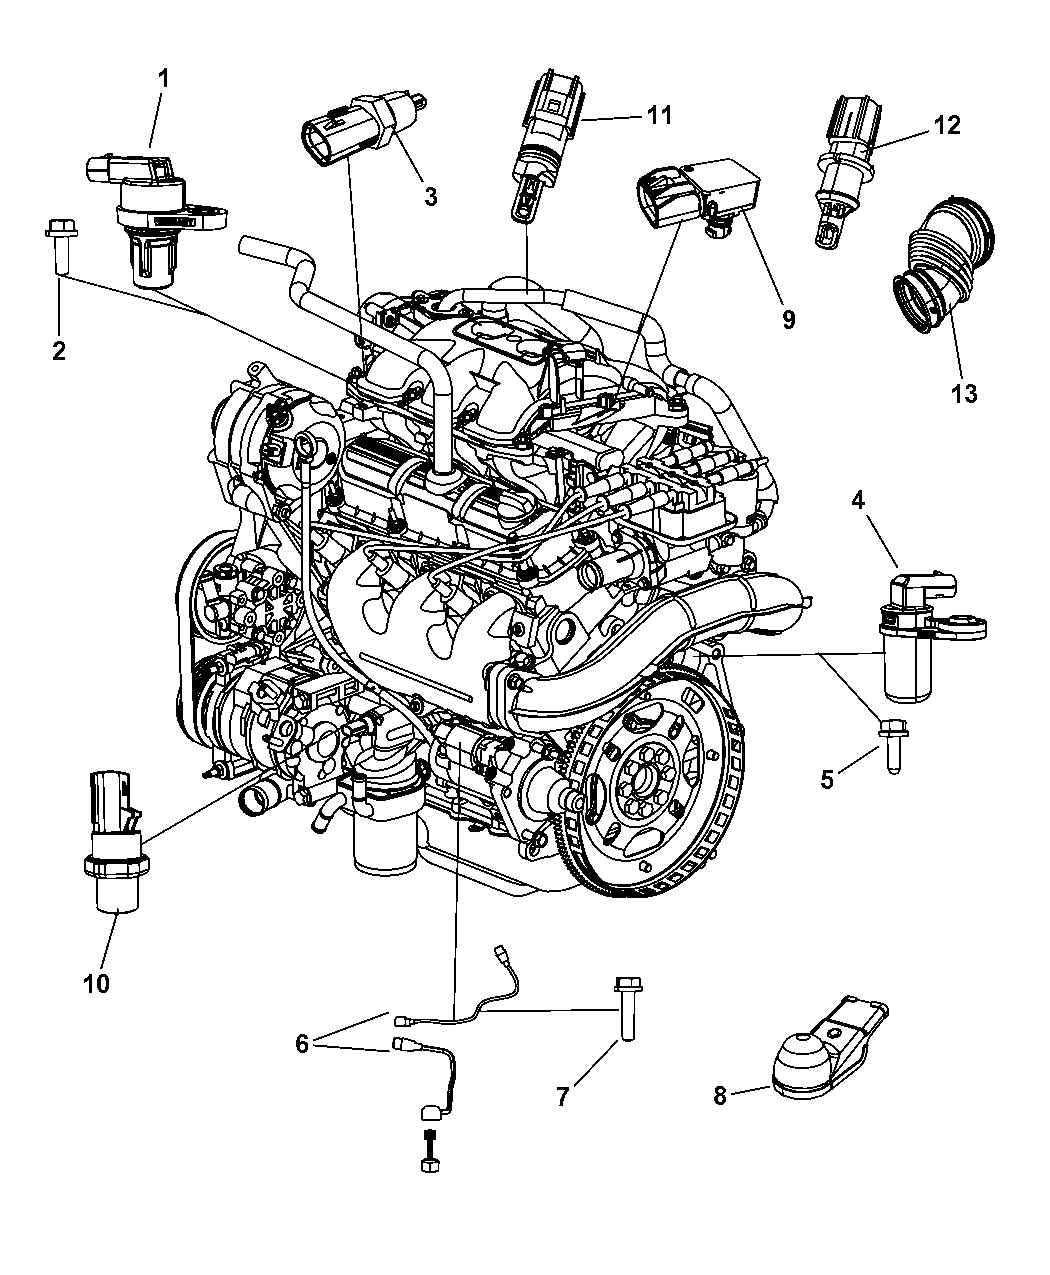 Engine Diagram On A 2010 Chrysler town and Country 3.8lt Ad Genuine Dodge Sensor Of Engine Diagram On A 2010 Chrysler town and Country 3.8lt